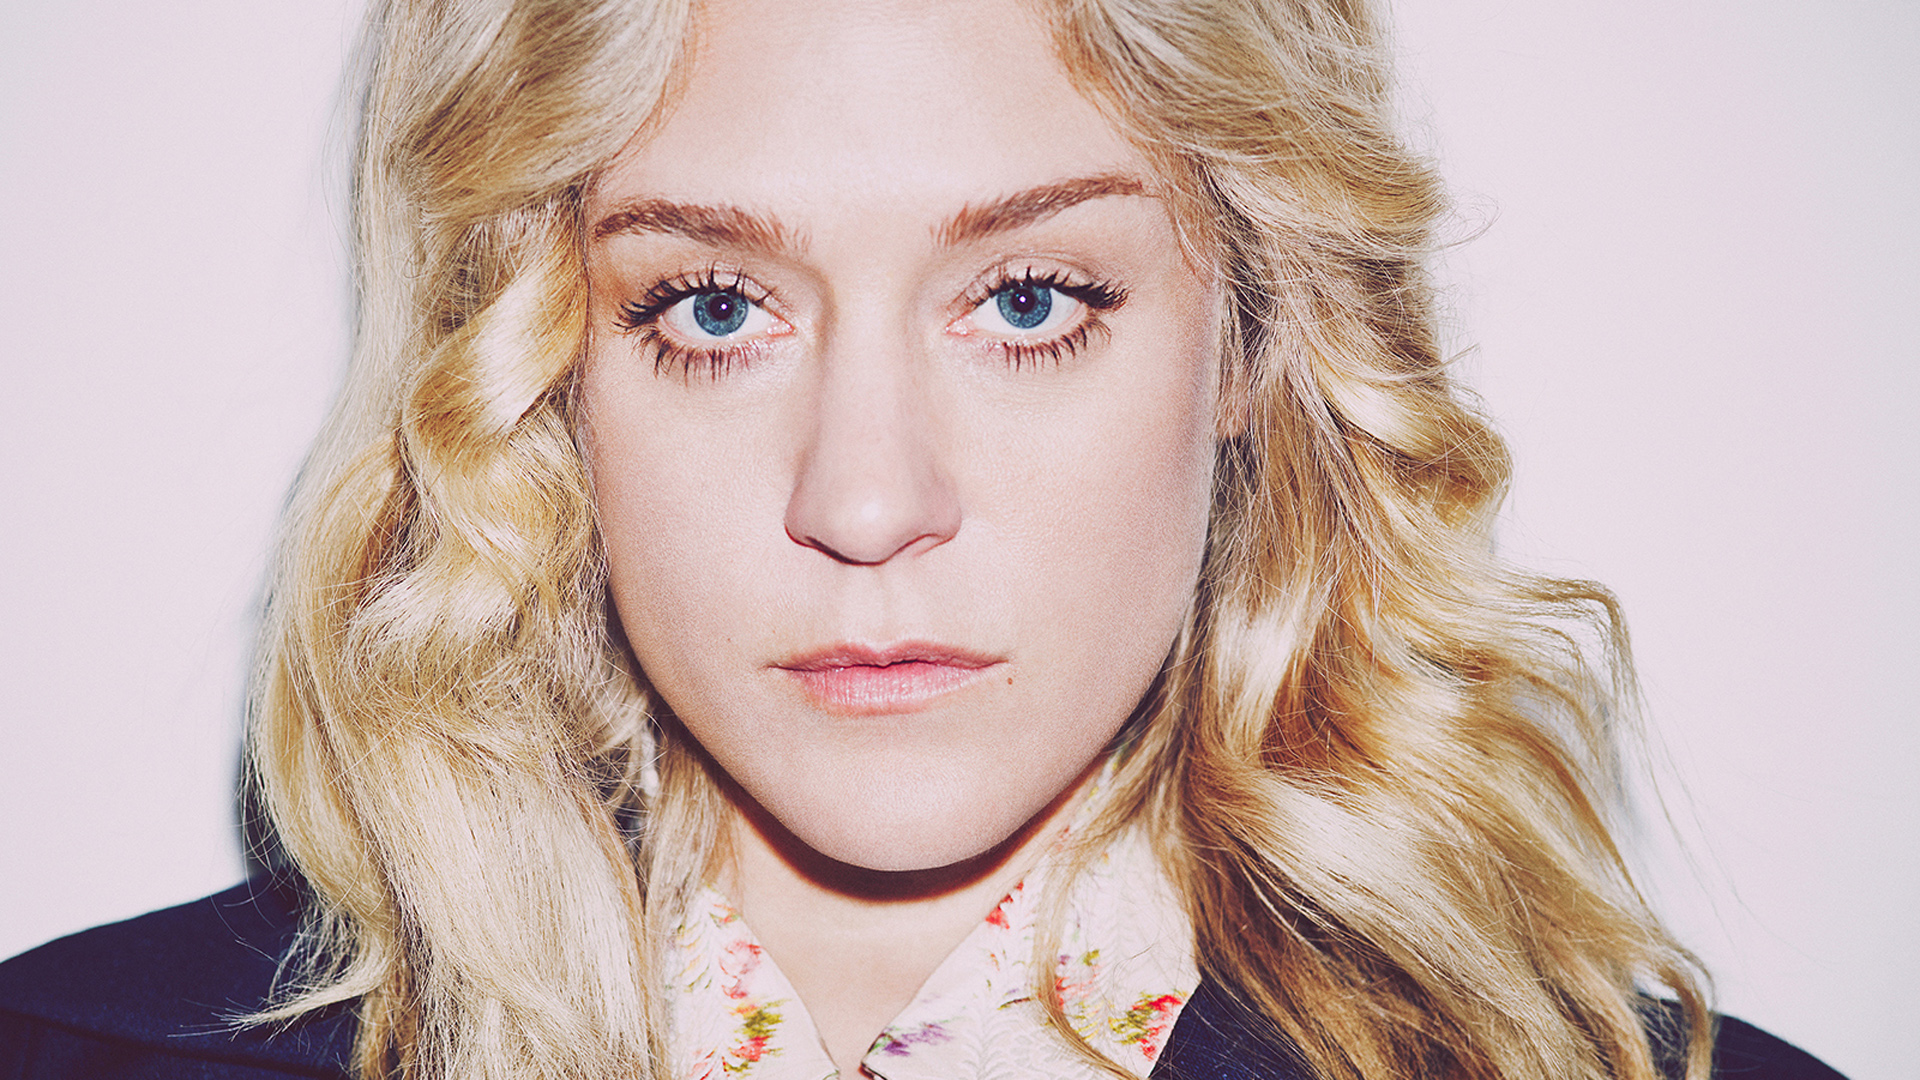 chloe sevigny face wallpaper 61537